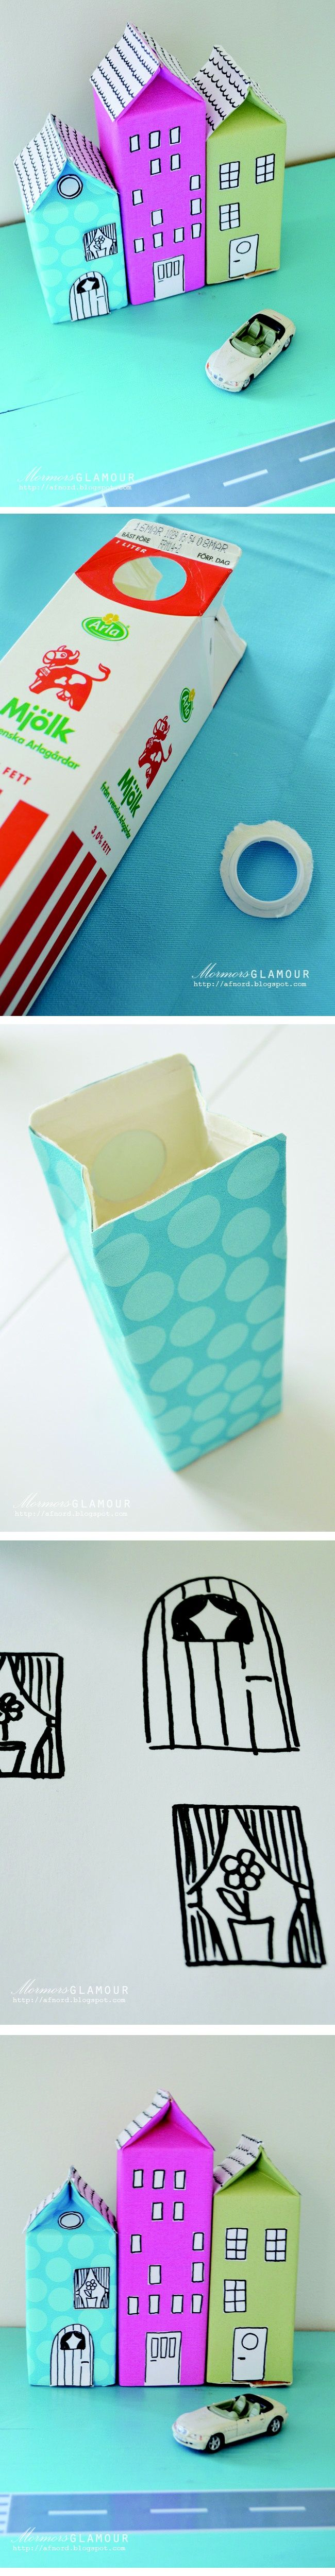 Upcycle your milkboxes - Fun to do with kids